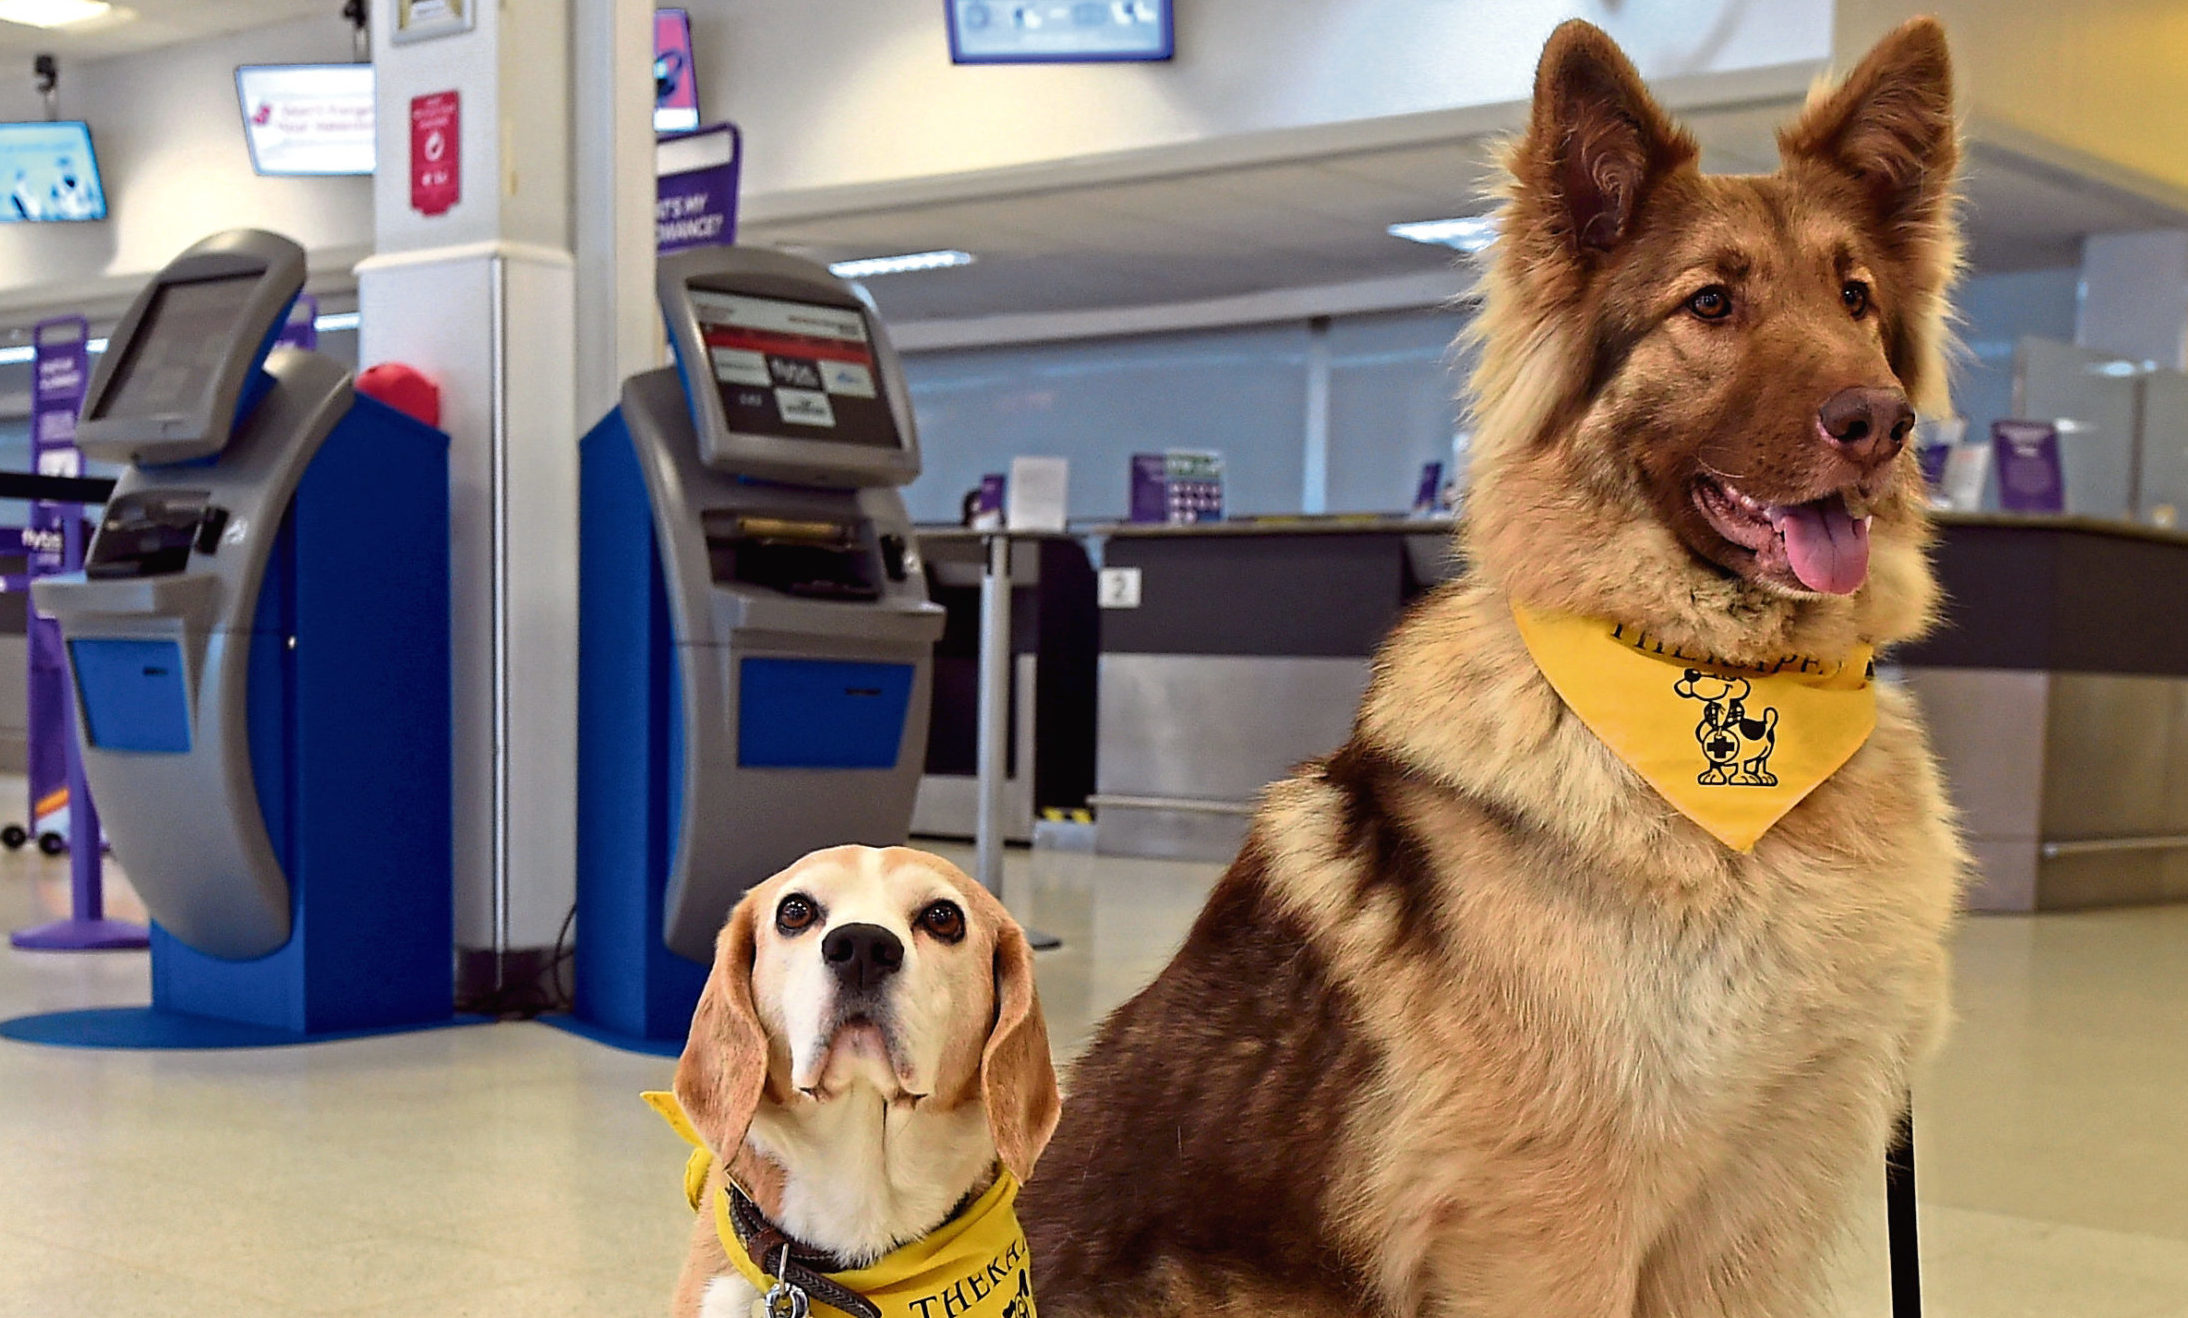 Noodle and Tweedie Bear at Aberdeen airport. Picture by Jim Irvine